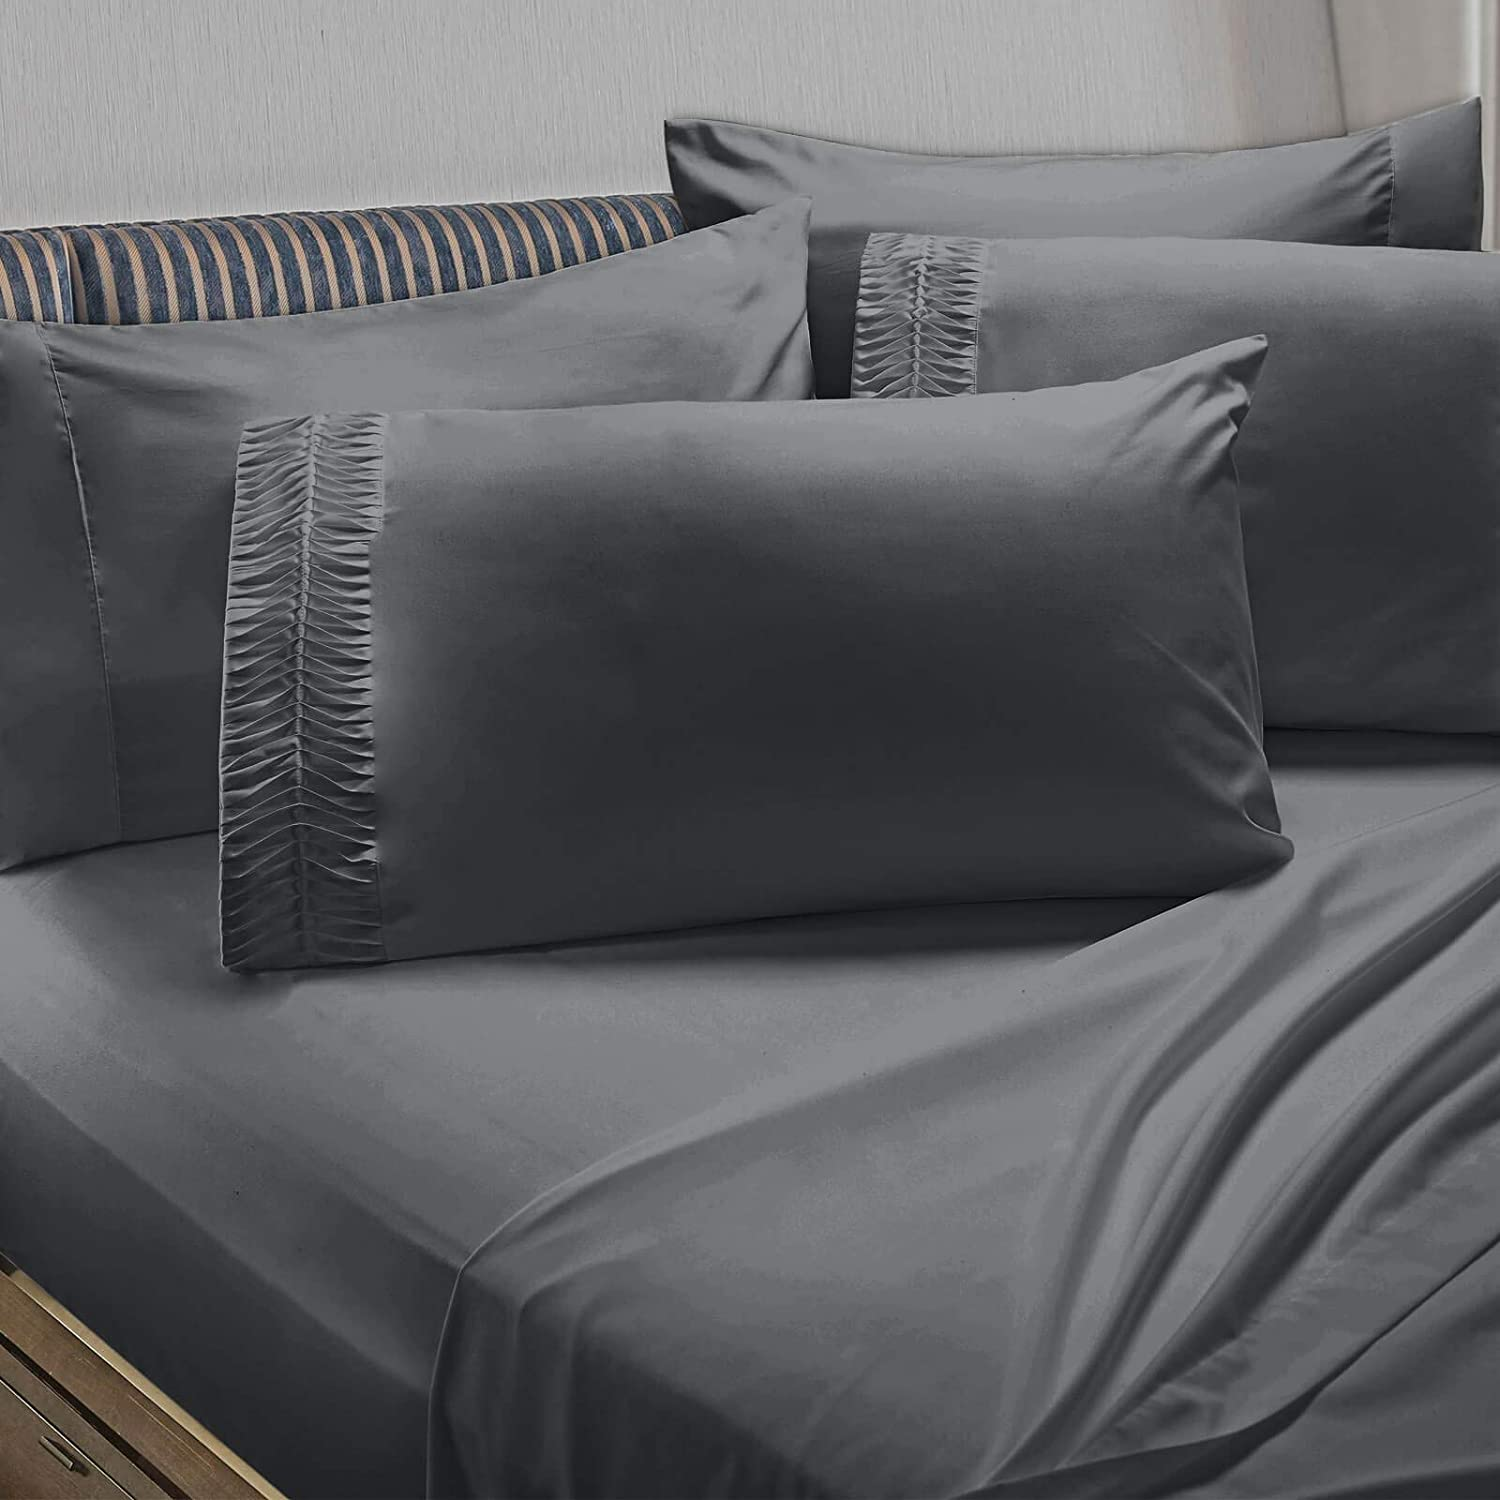 4 PC Sheets Twin Navy Clara Clark 4-Piece 100/% Soft Brushed Microfiber Bedding Set Luxury Pleated Pillowcases Cool /& Breathable